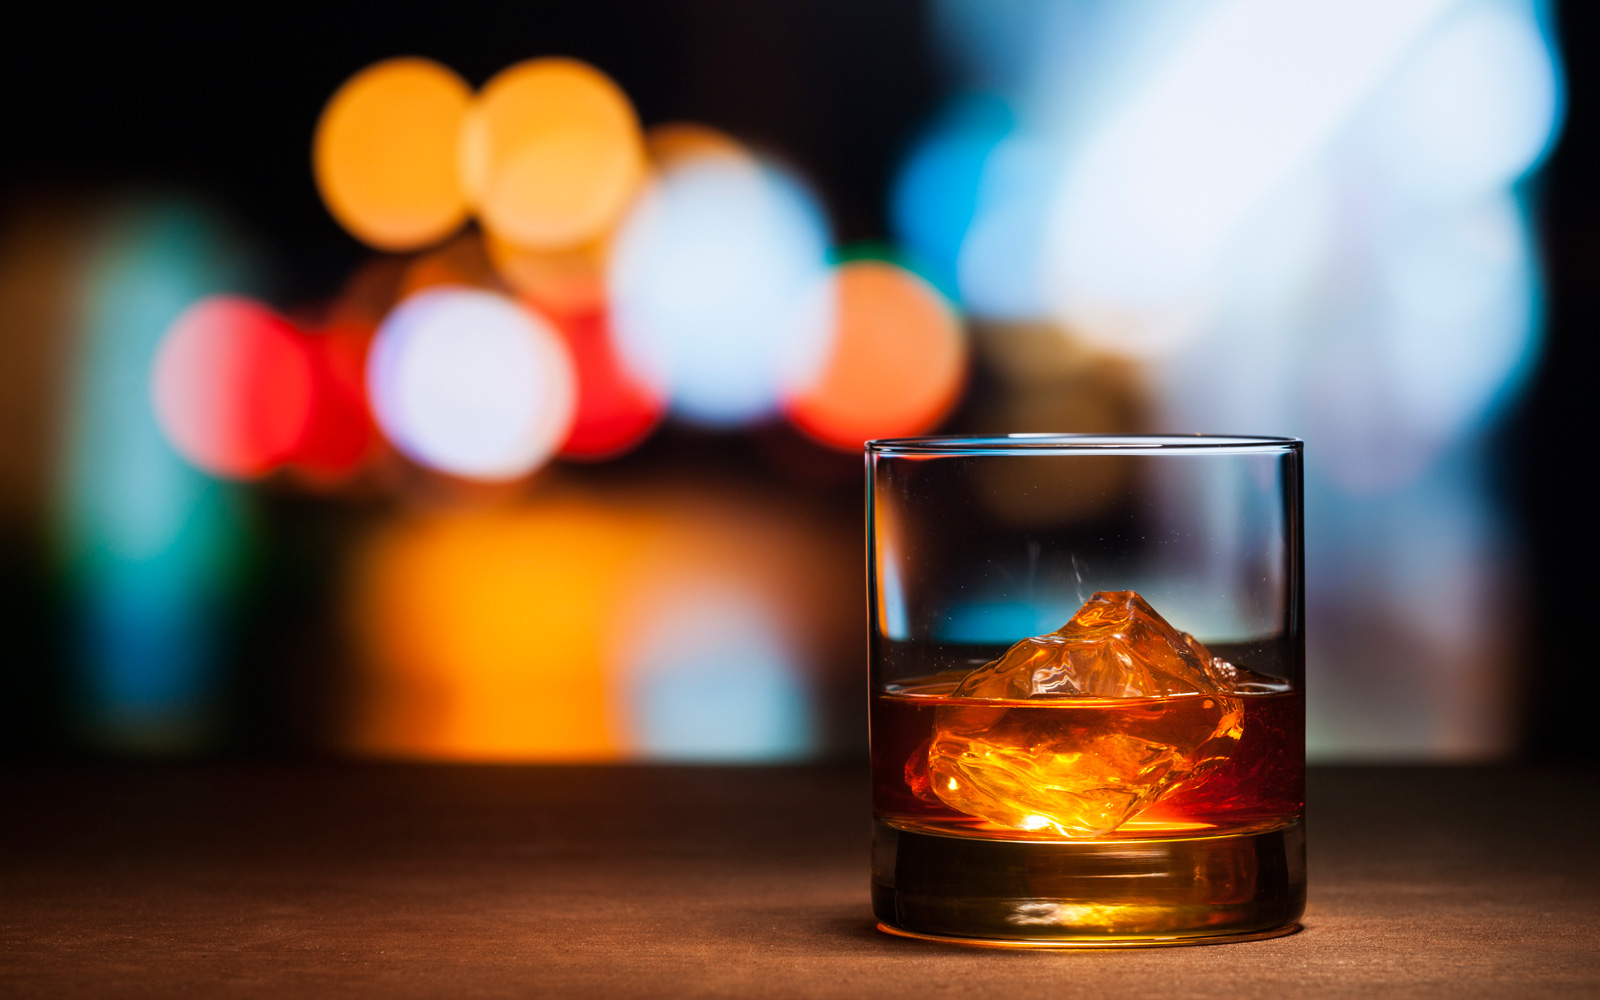 The Whisky Hotel in Los Angeles will have whisky-themed minibars in every room.